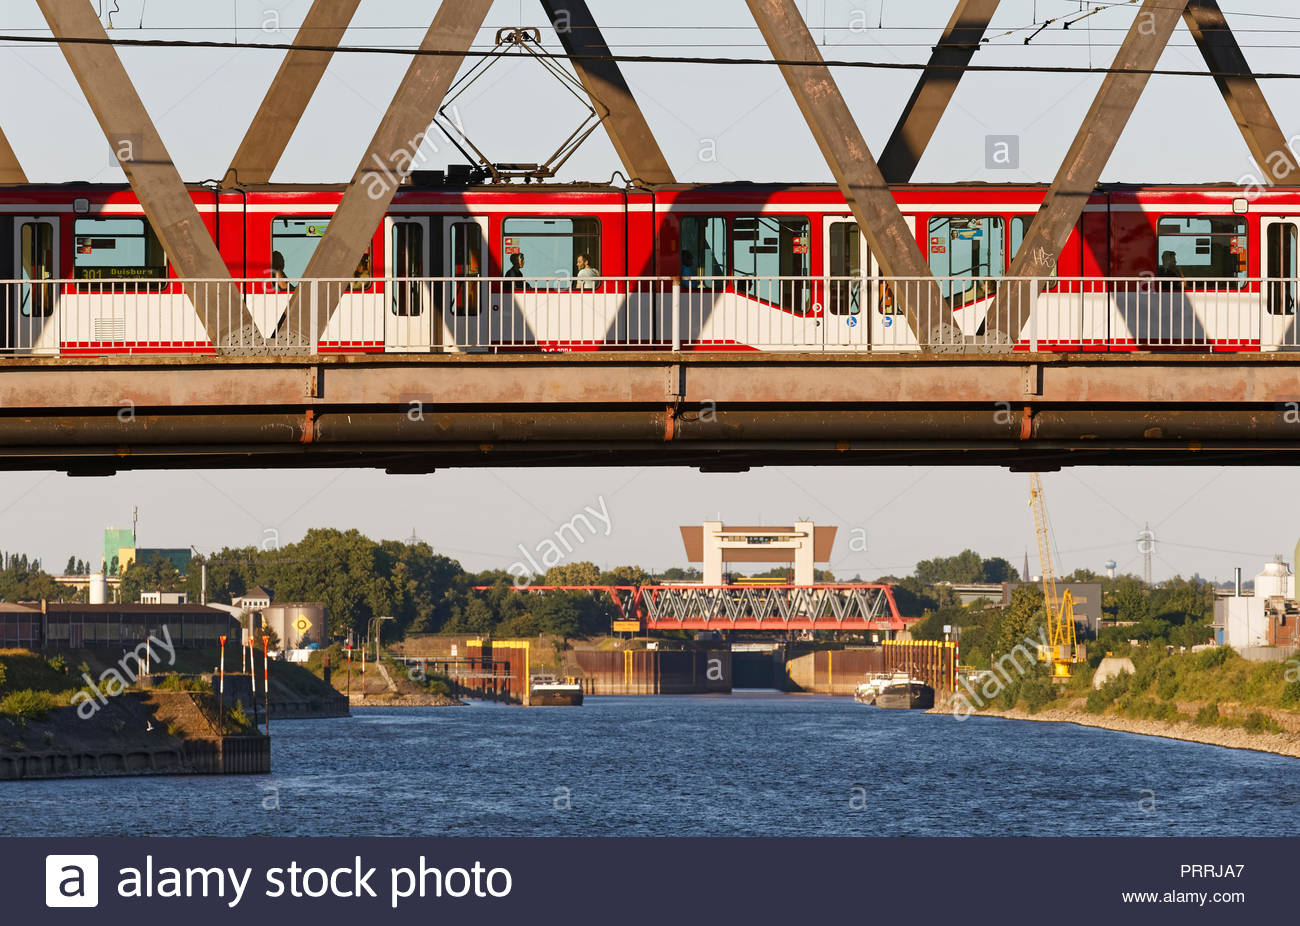 Duisburg Meiderich truss bridge with tram streetcar crossing Rhine-Herne-Canal waterway lock sluice gate tower water traffic transport inland port Stock Photo